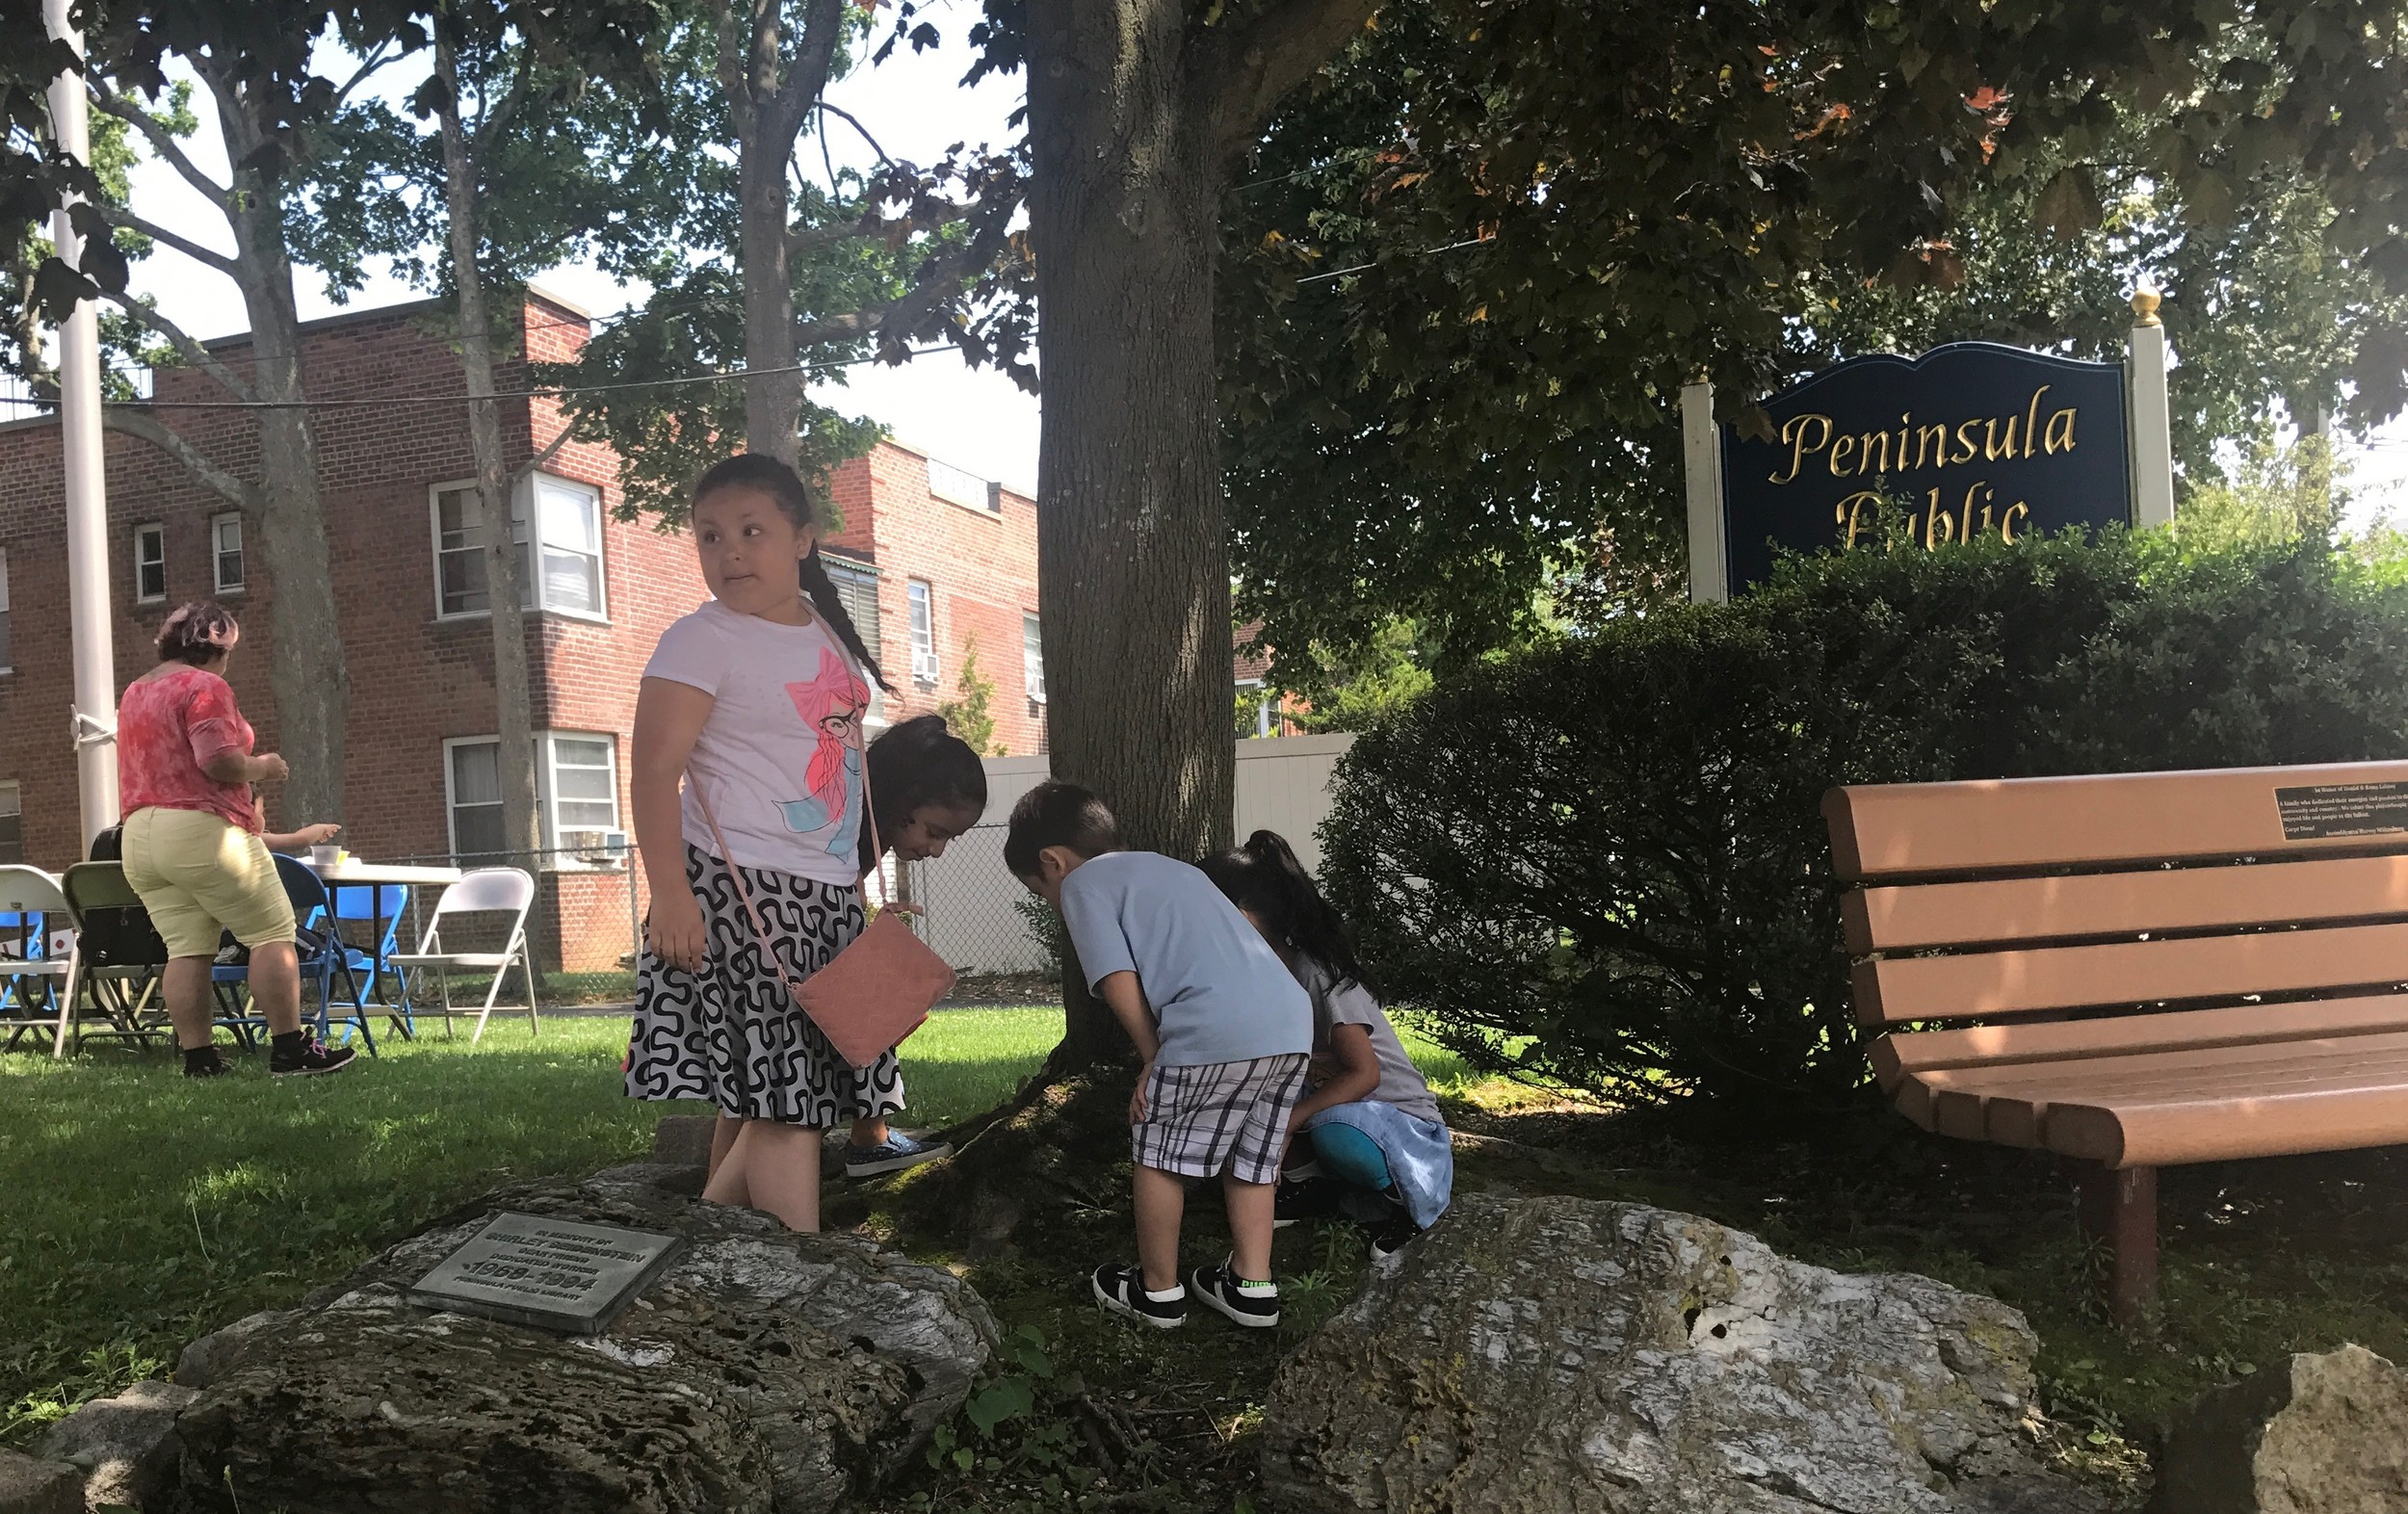 After eating, children watched as a worm crawled across a tree.